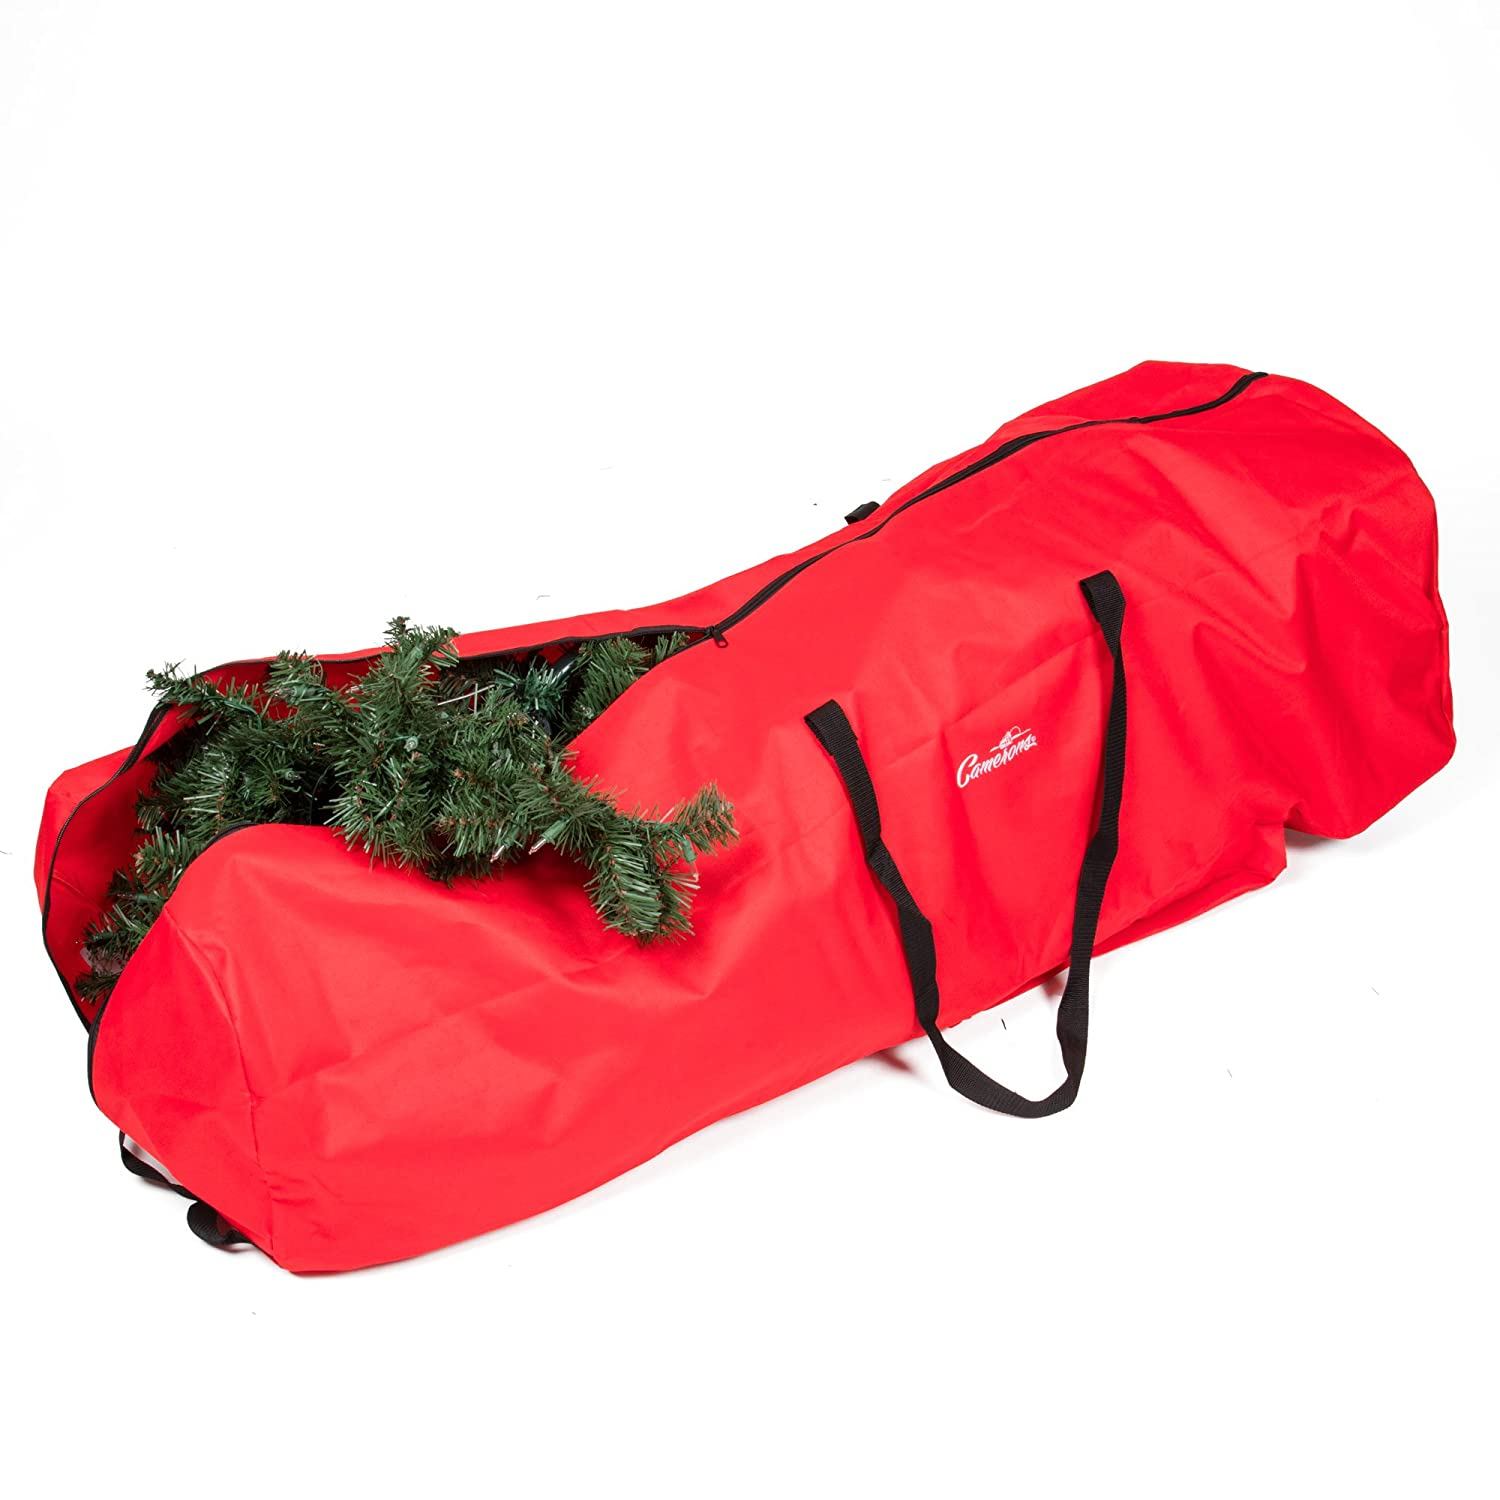 Camerons Products Christmas Tree Storage Bag with Wheels - XL Heavy Duty 56